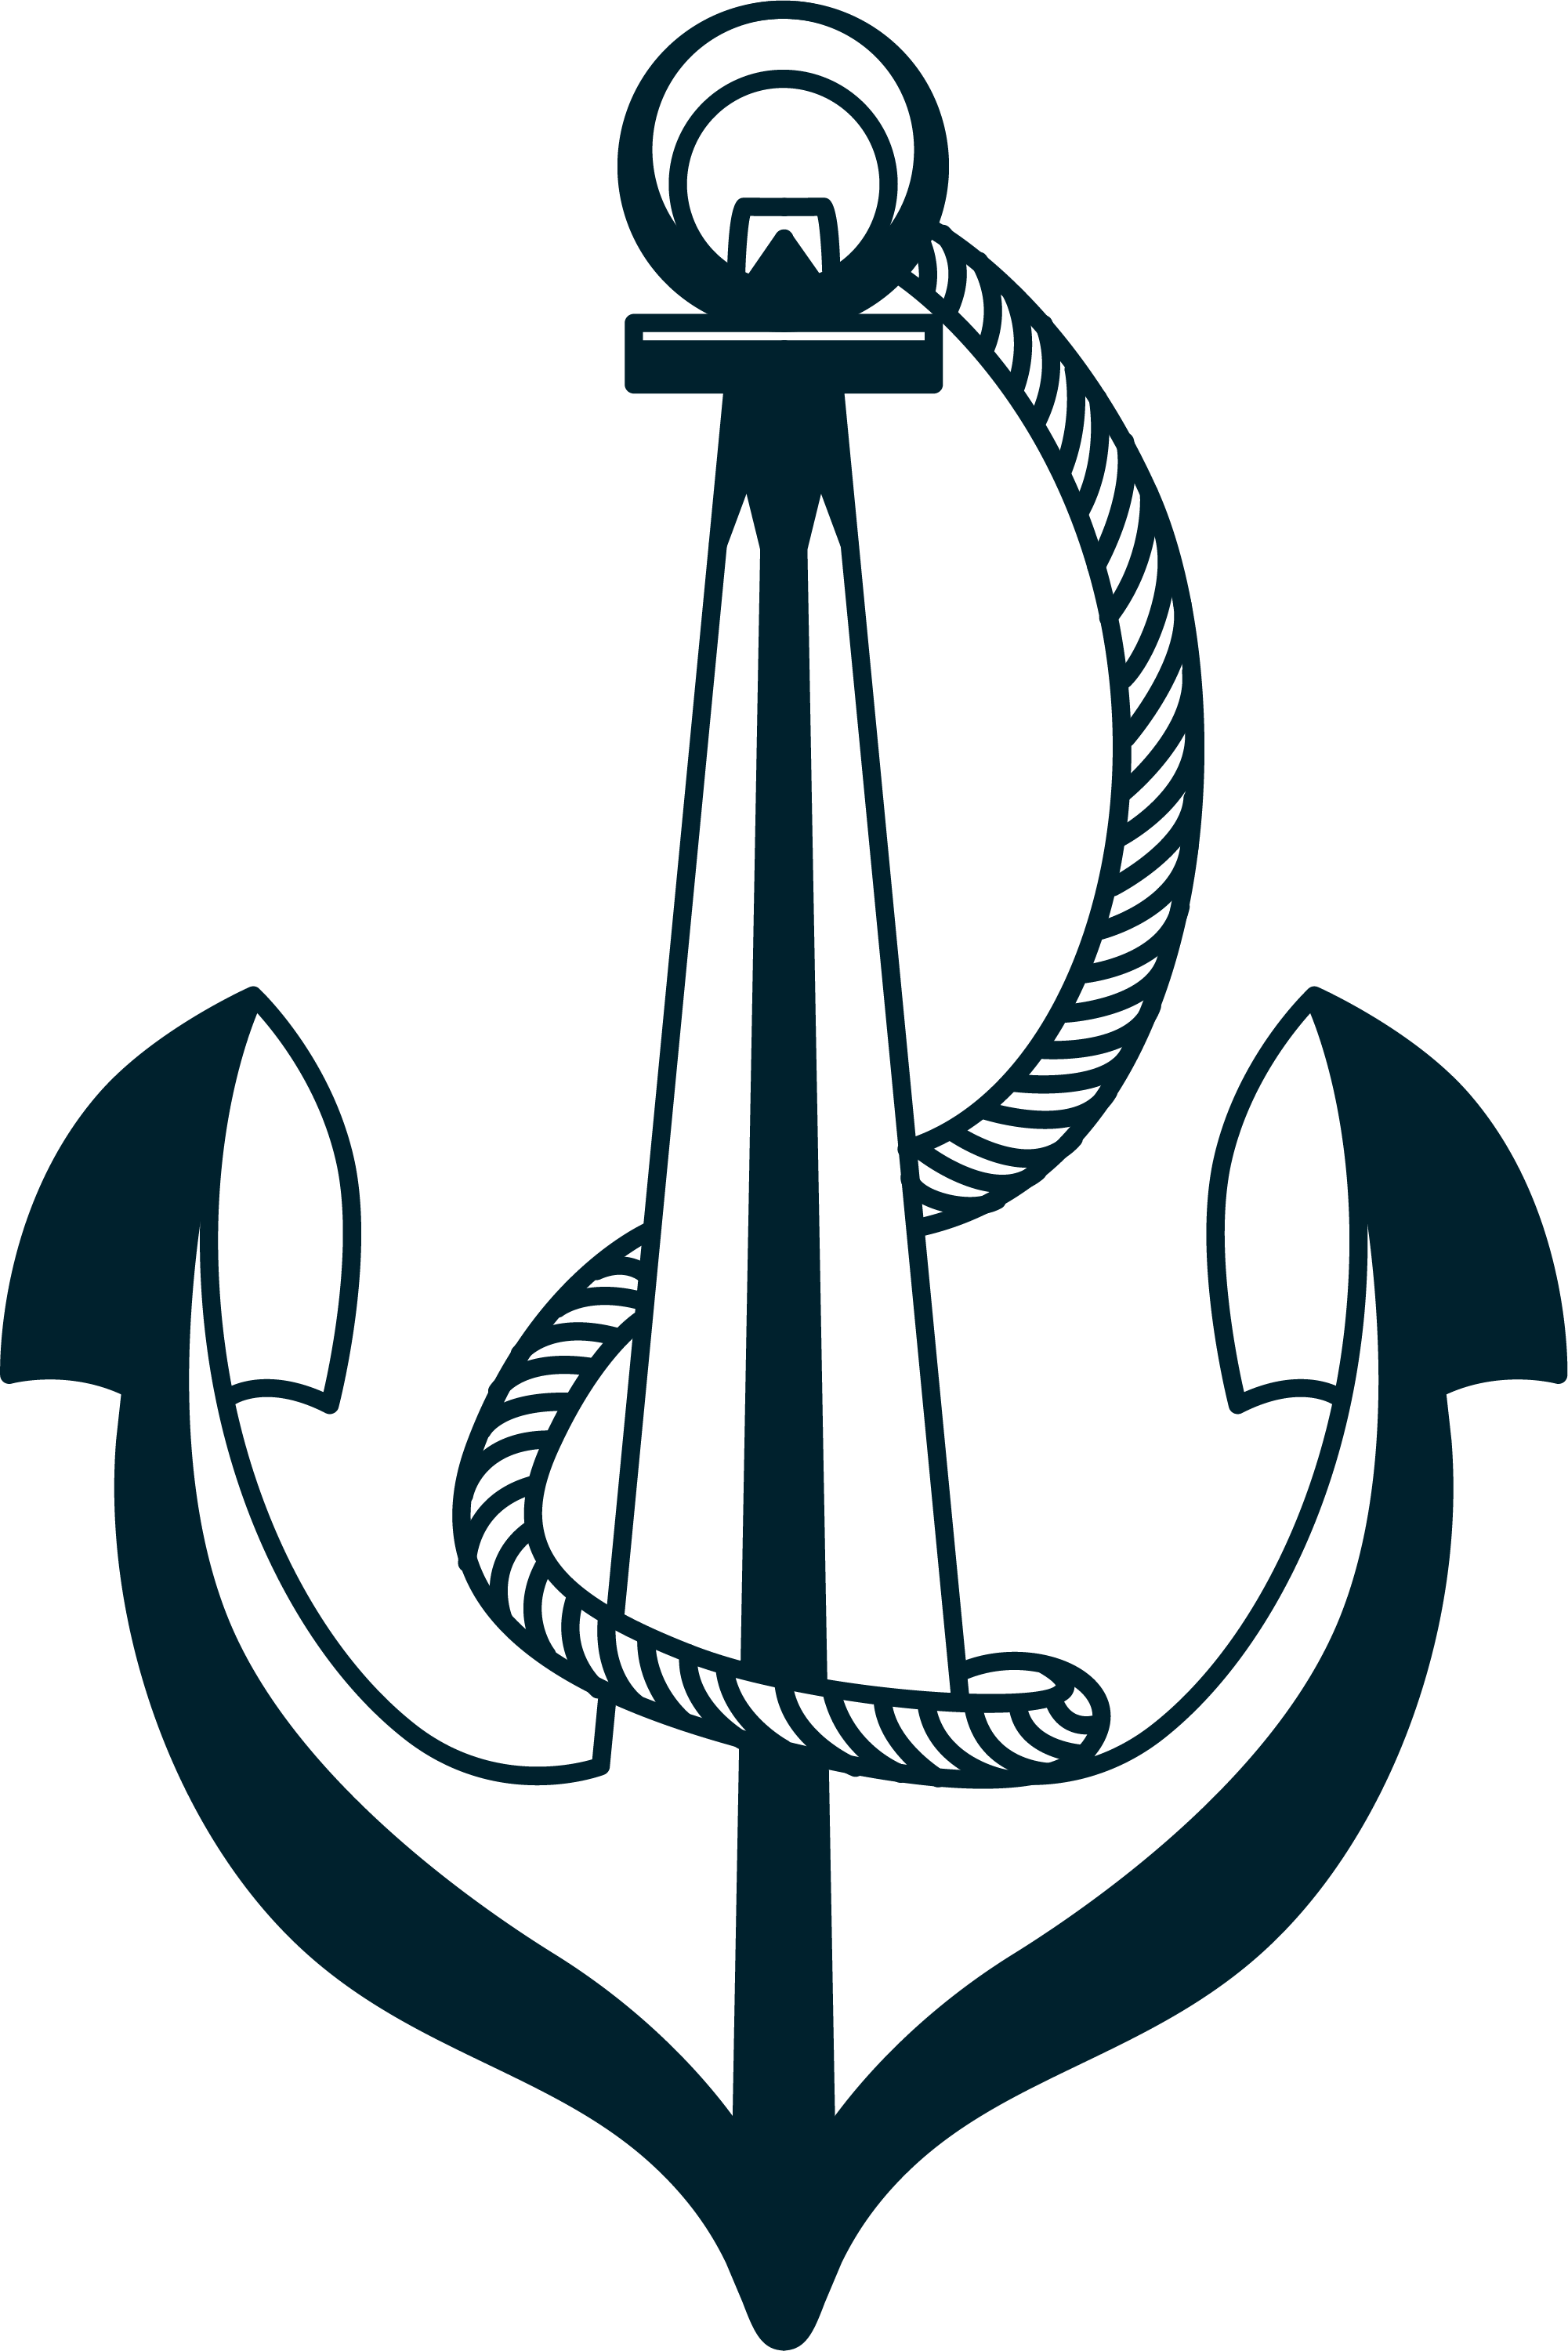 Ship watercraft clip art. Clipart anchor rope